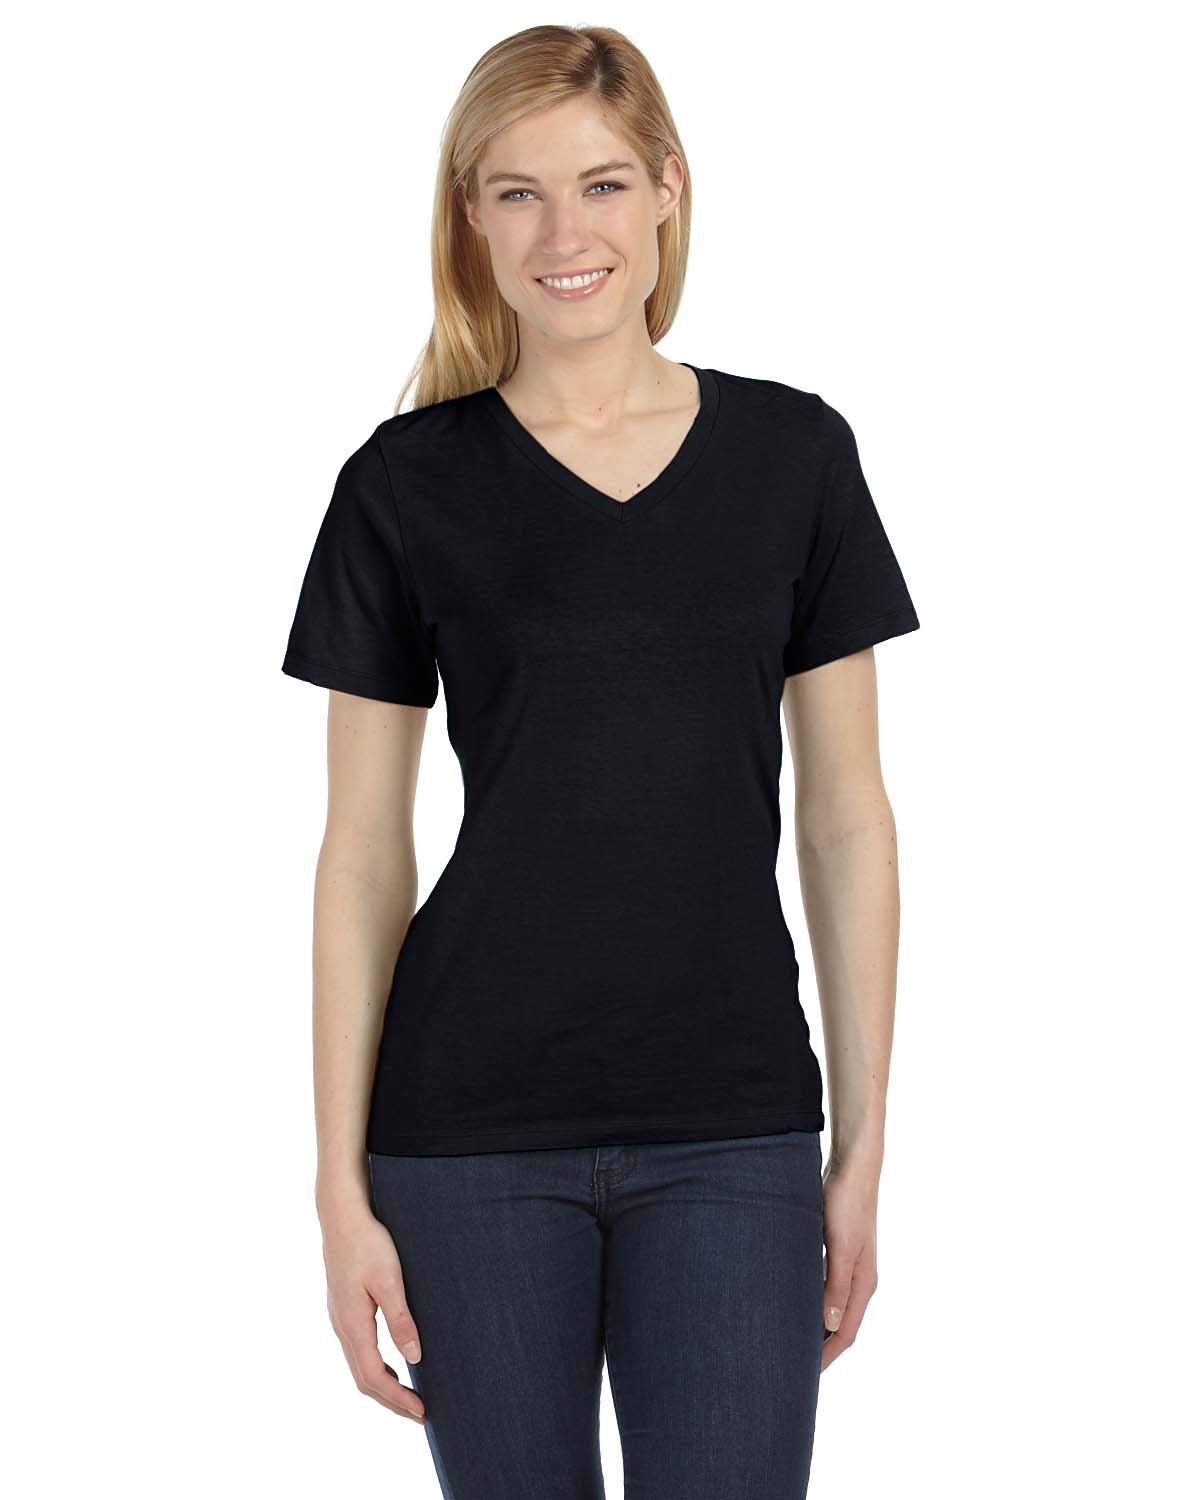 Bella women 39 s missy fit relaxed jersey short sleeve v neck for Womens v neck t shirts